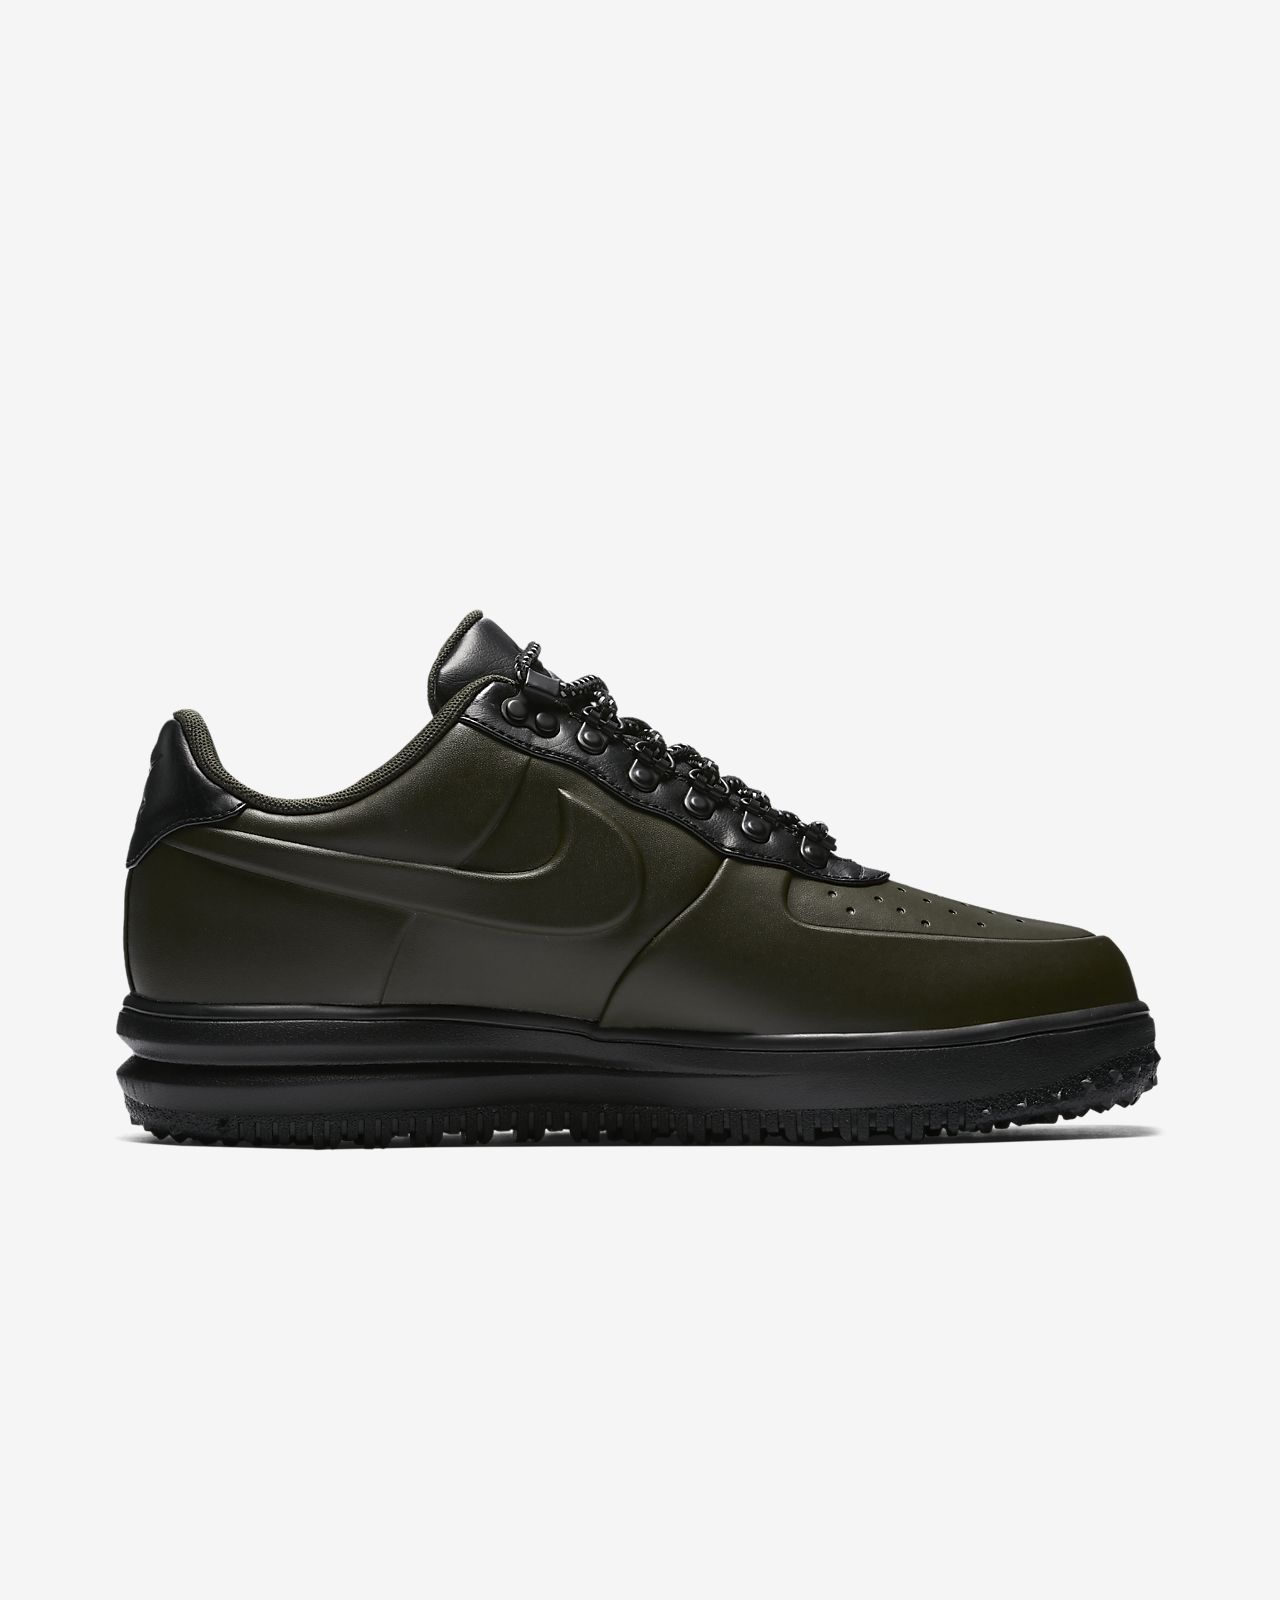 newest f985d 5a715 ... calzado para hombre nike lunar force 1 duckboot low